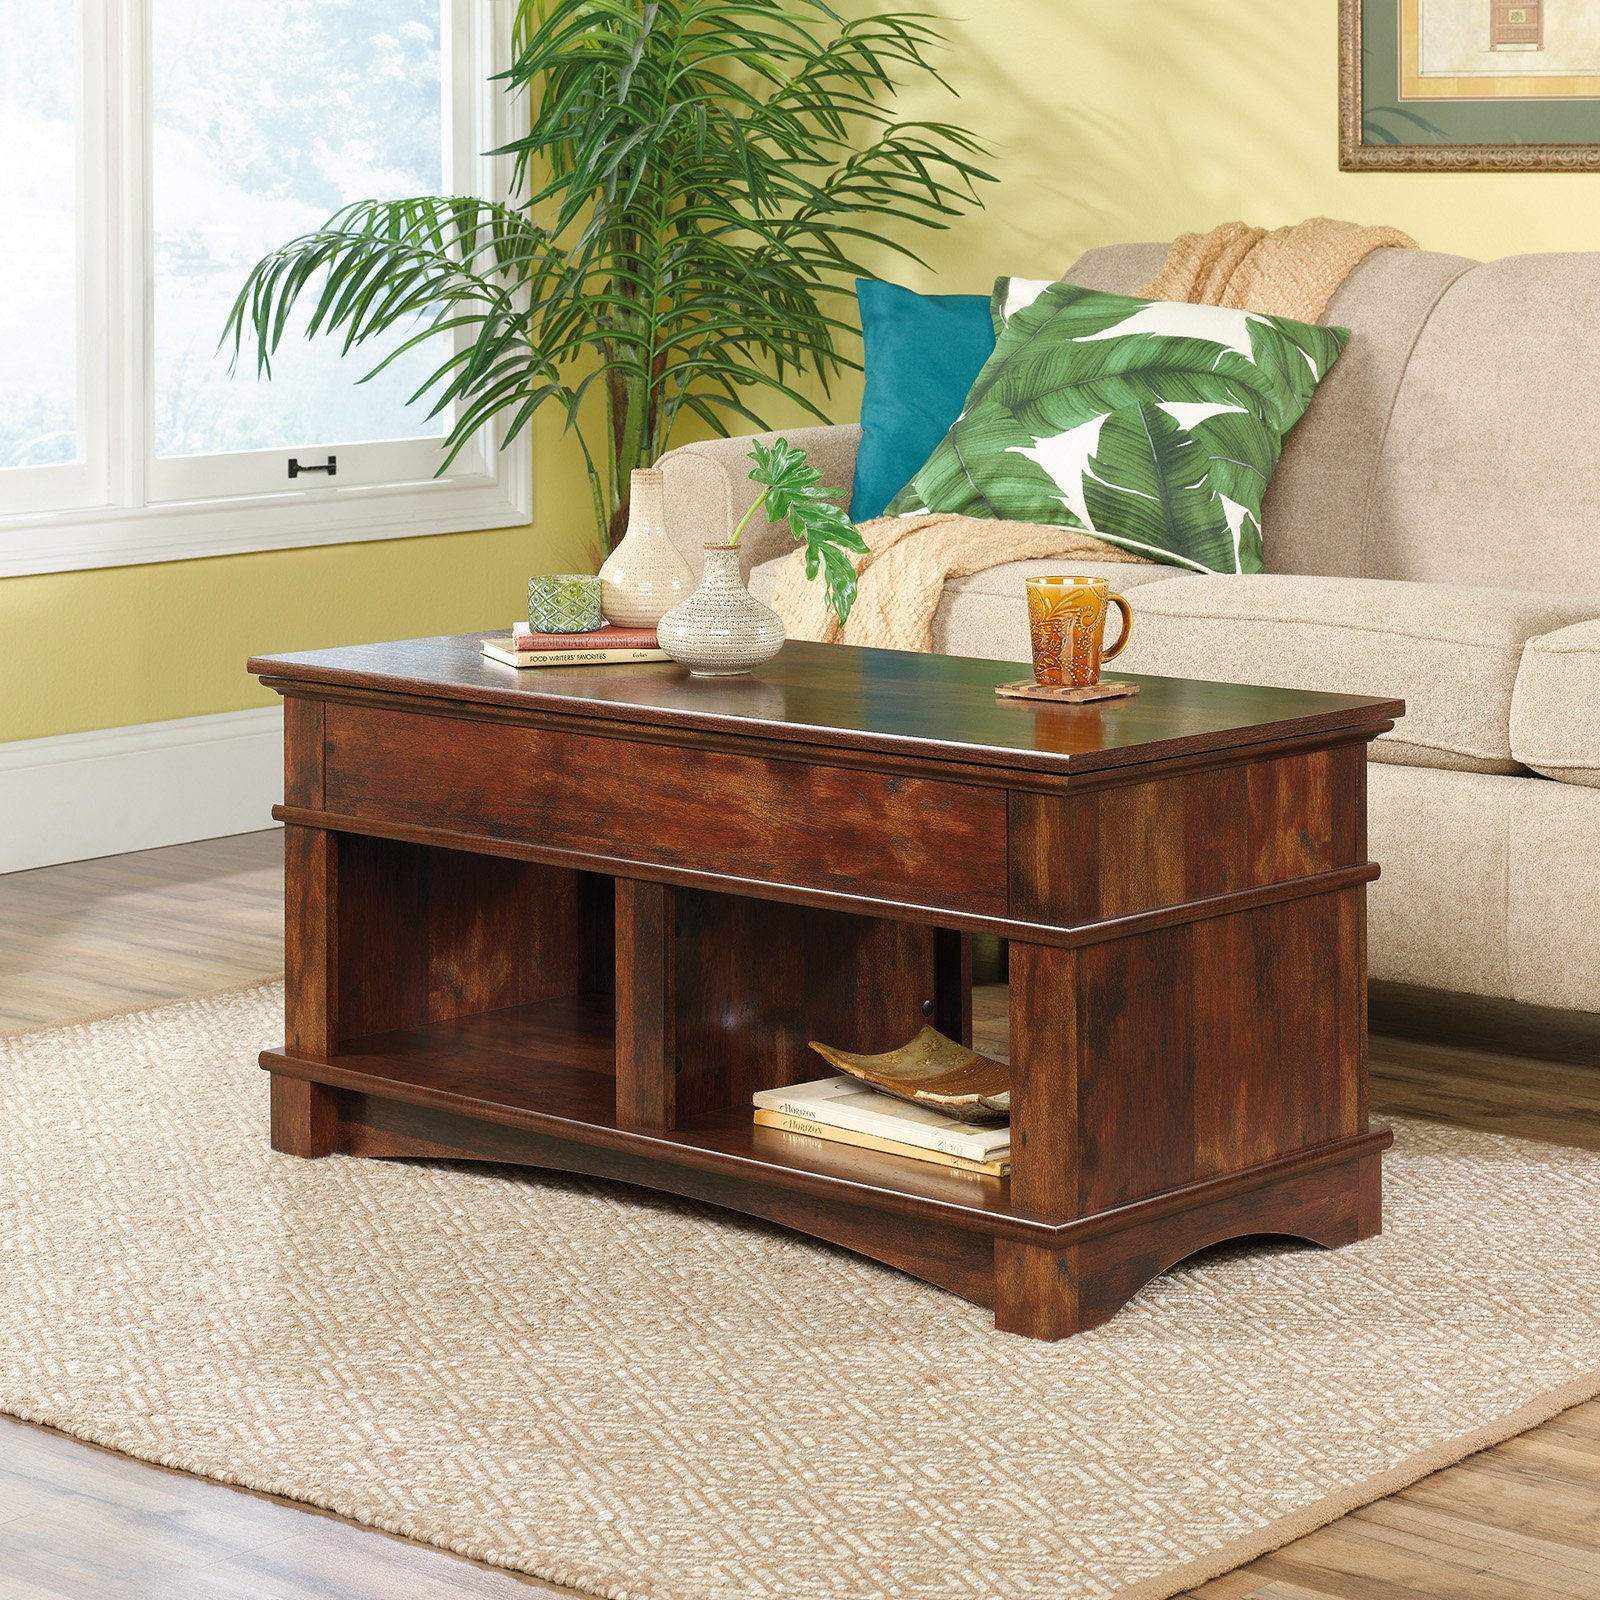 sauder harbor view lift top coffee table furniture end tables baseball used oak homesense calgary farmhouse modern kitchen high wood brands against the wall large dog kennel hill